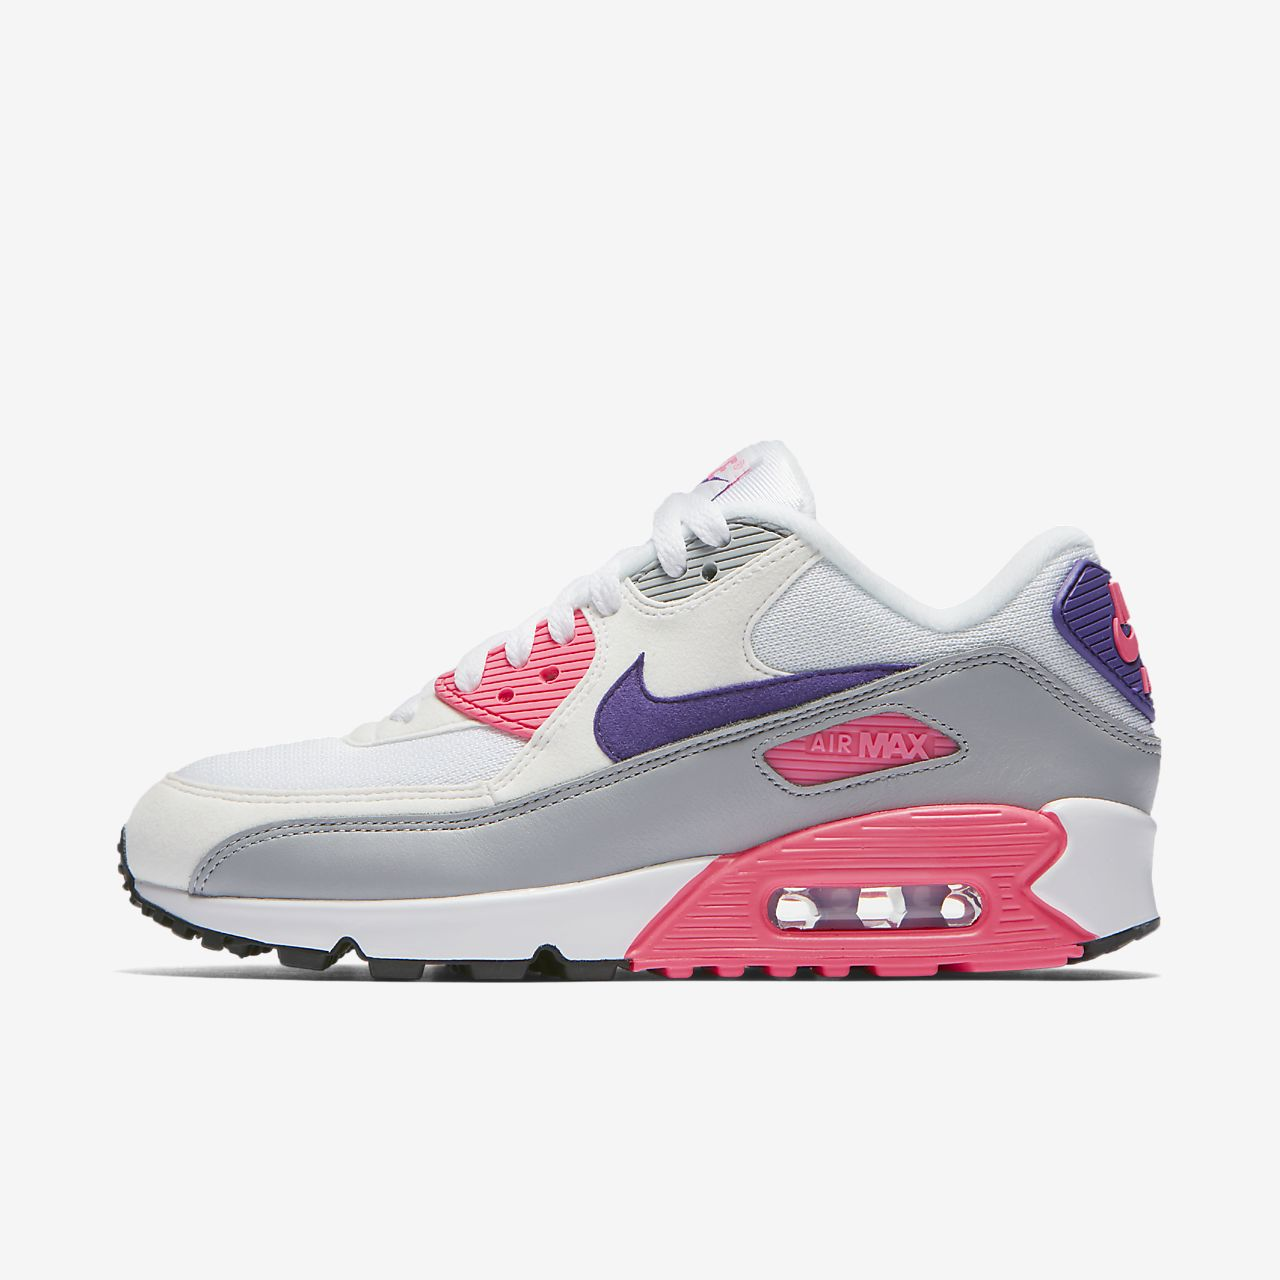 new zealand nike air max 90 laser violet 3a66d dff3e